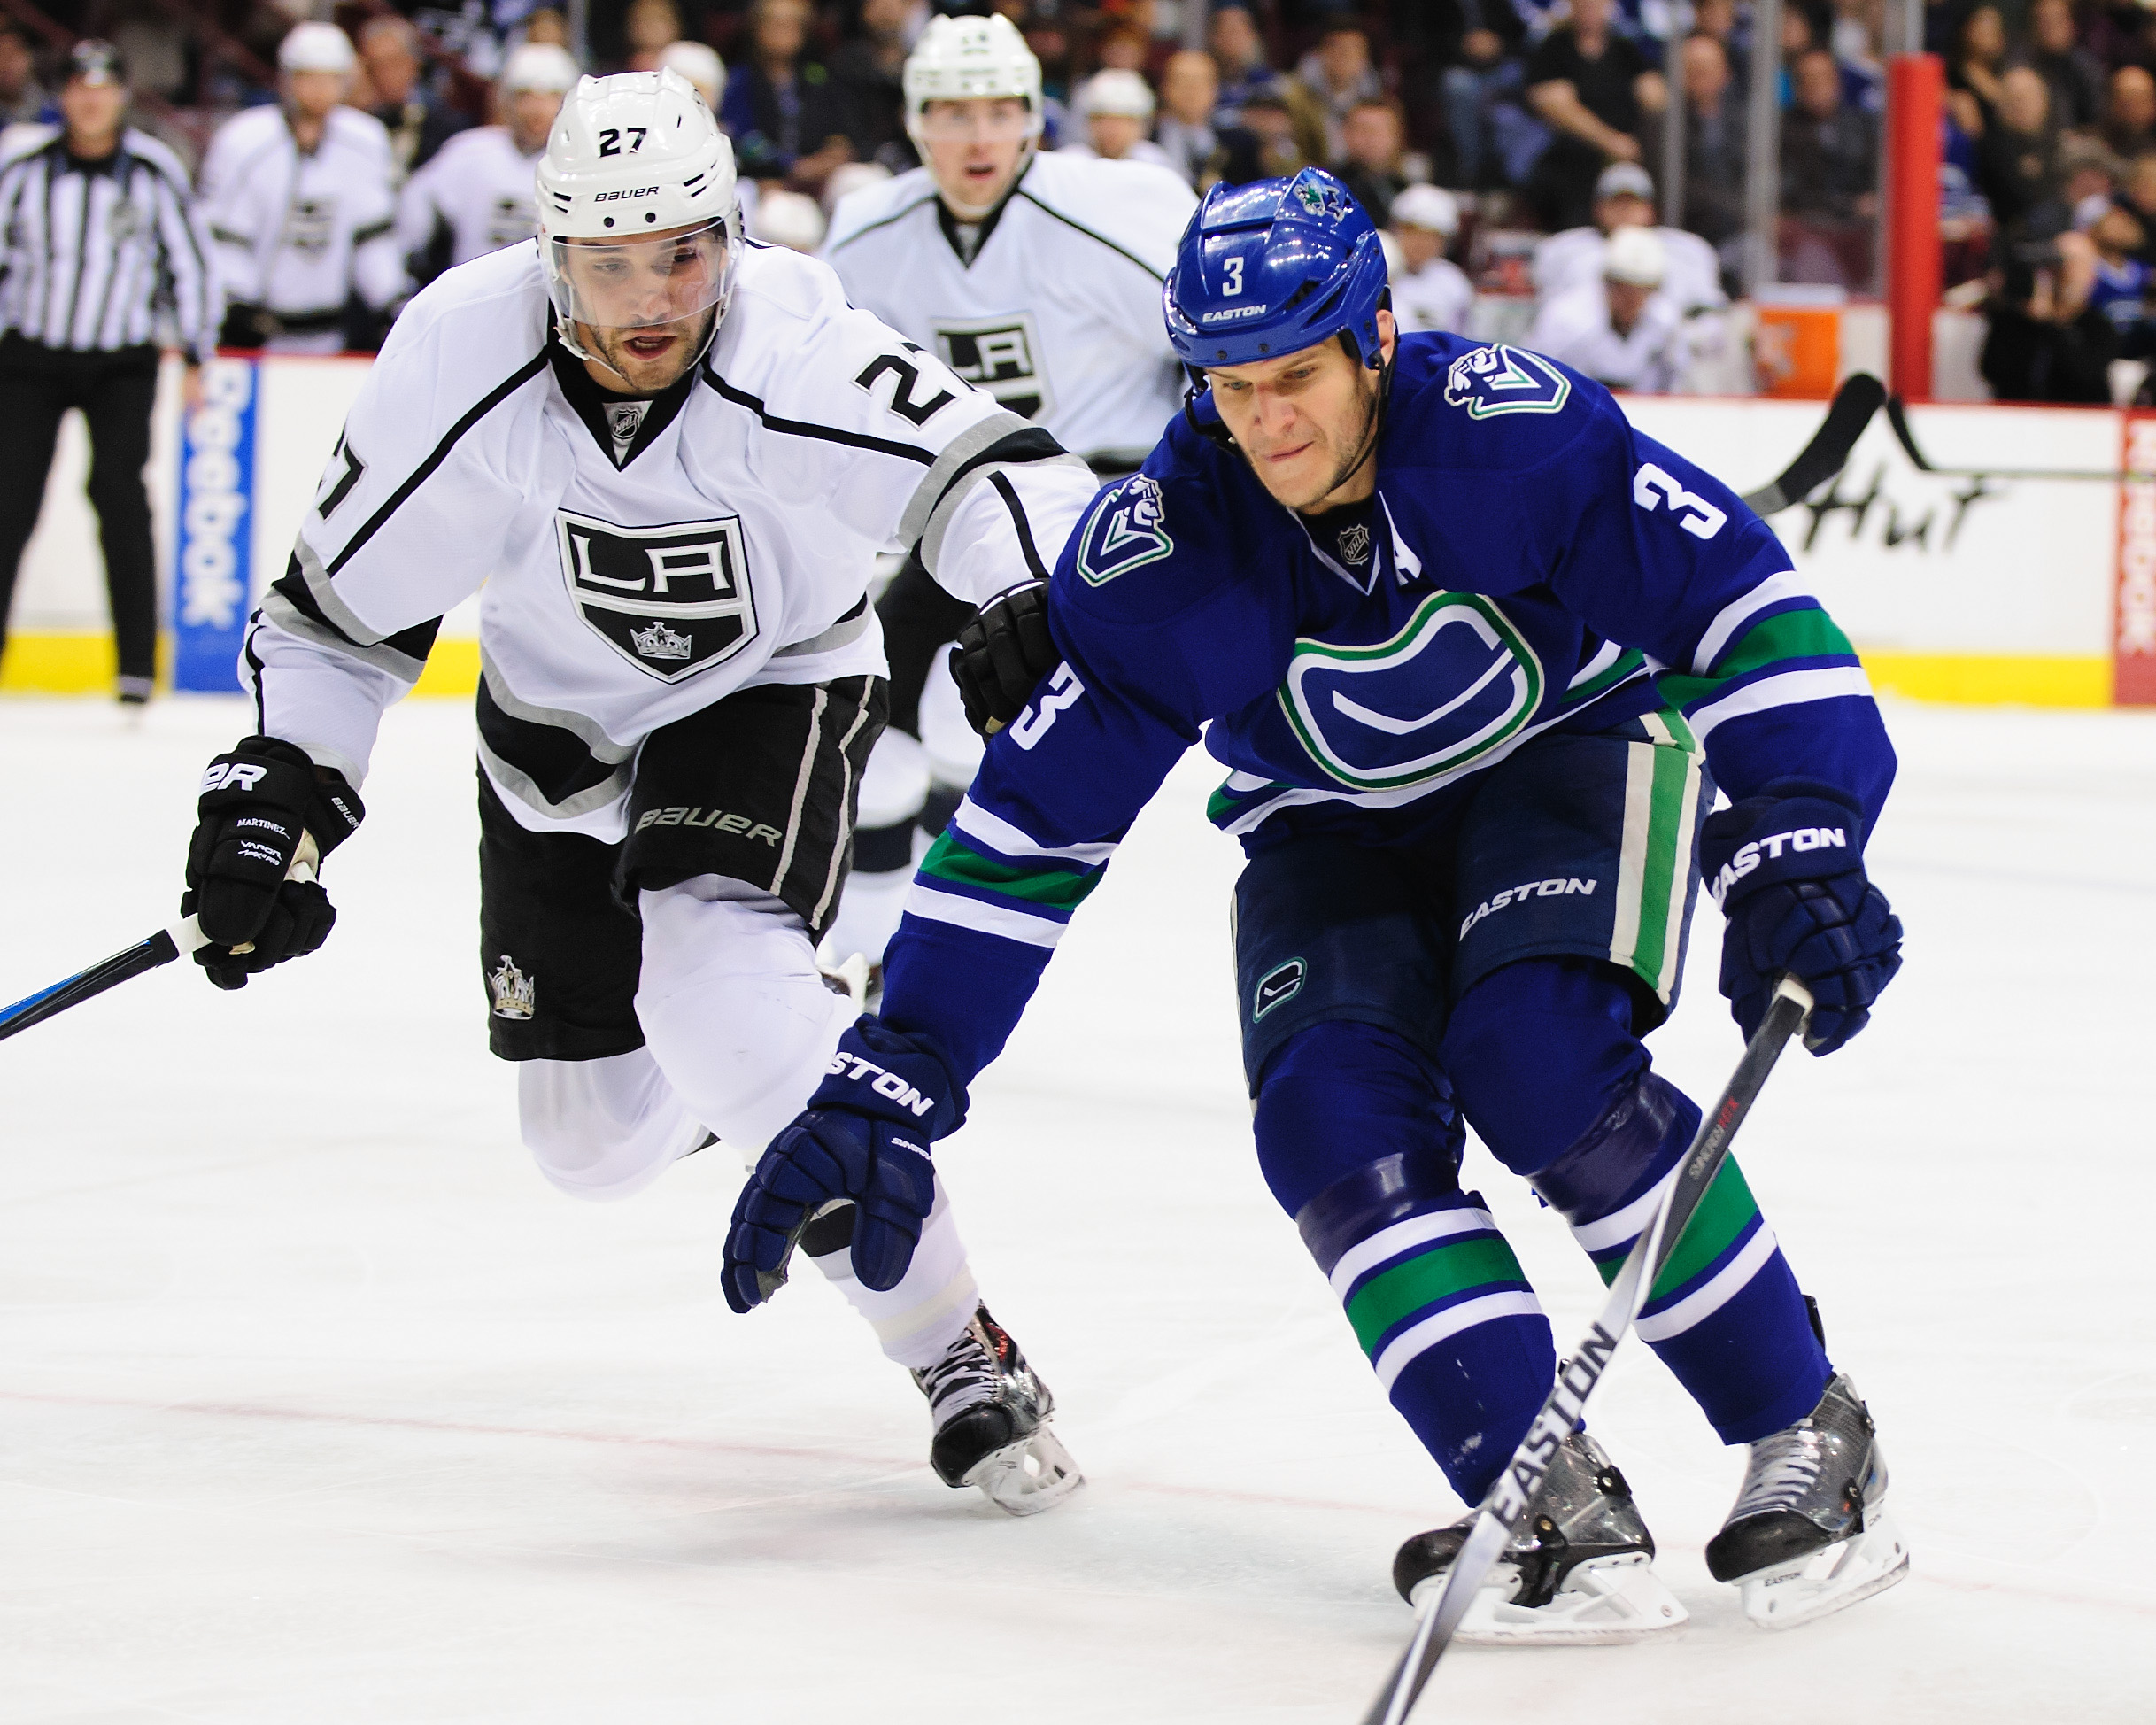 NHL schedule 2015: Kings look to continue playoff push